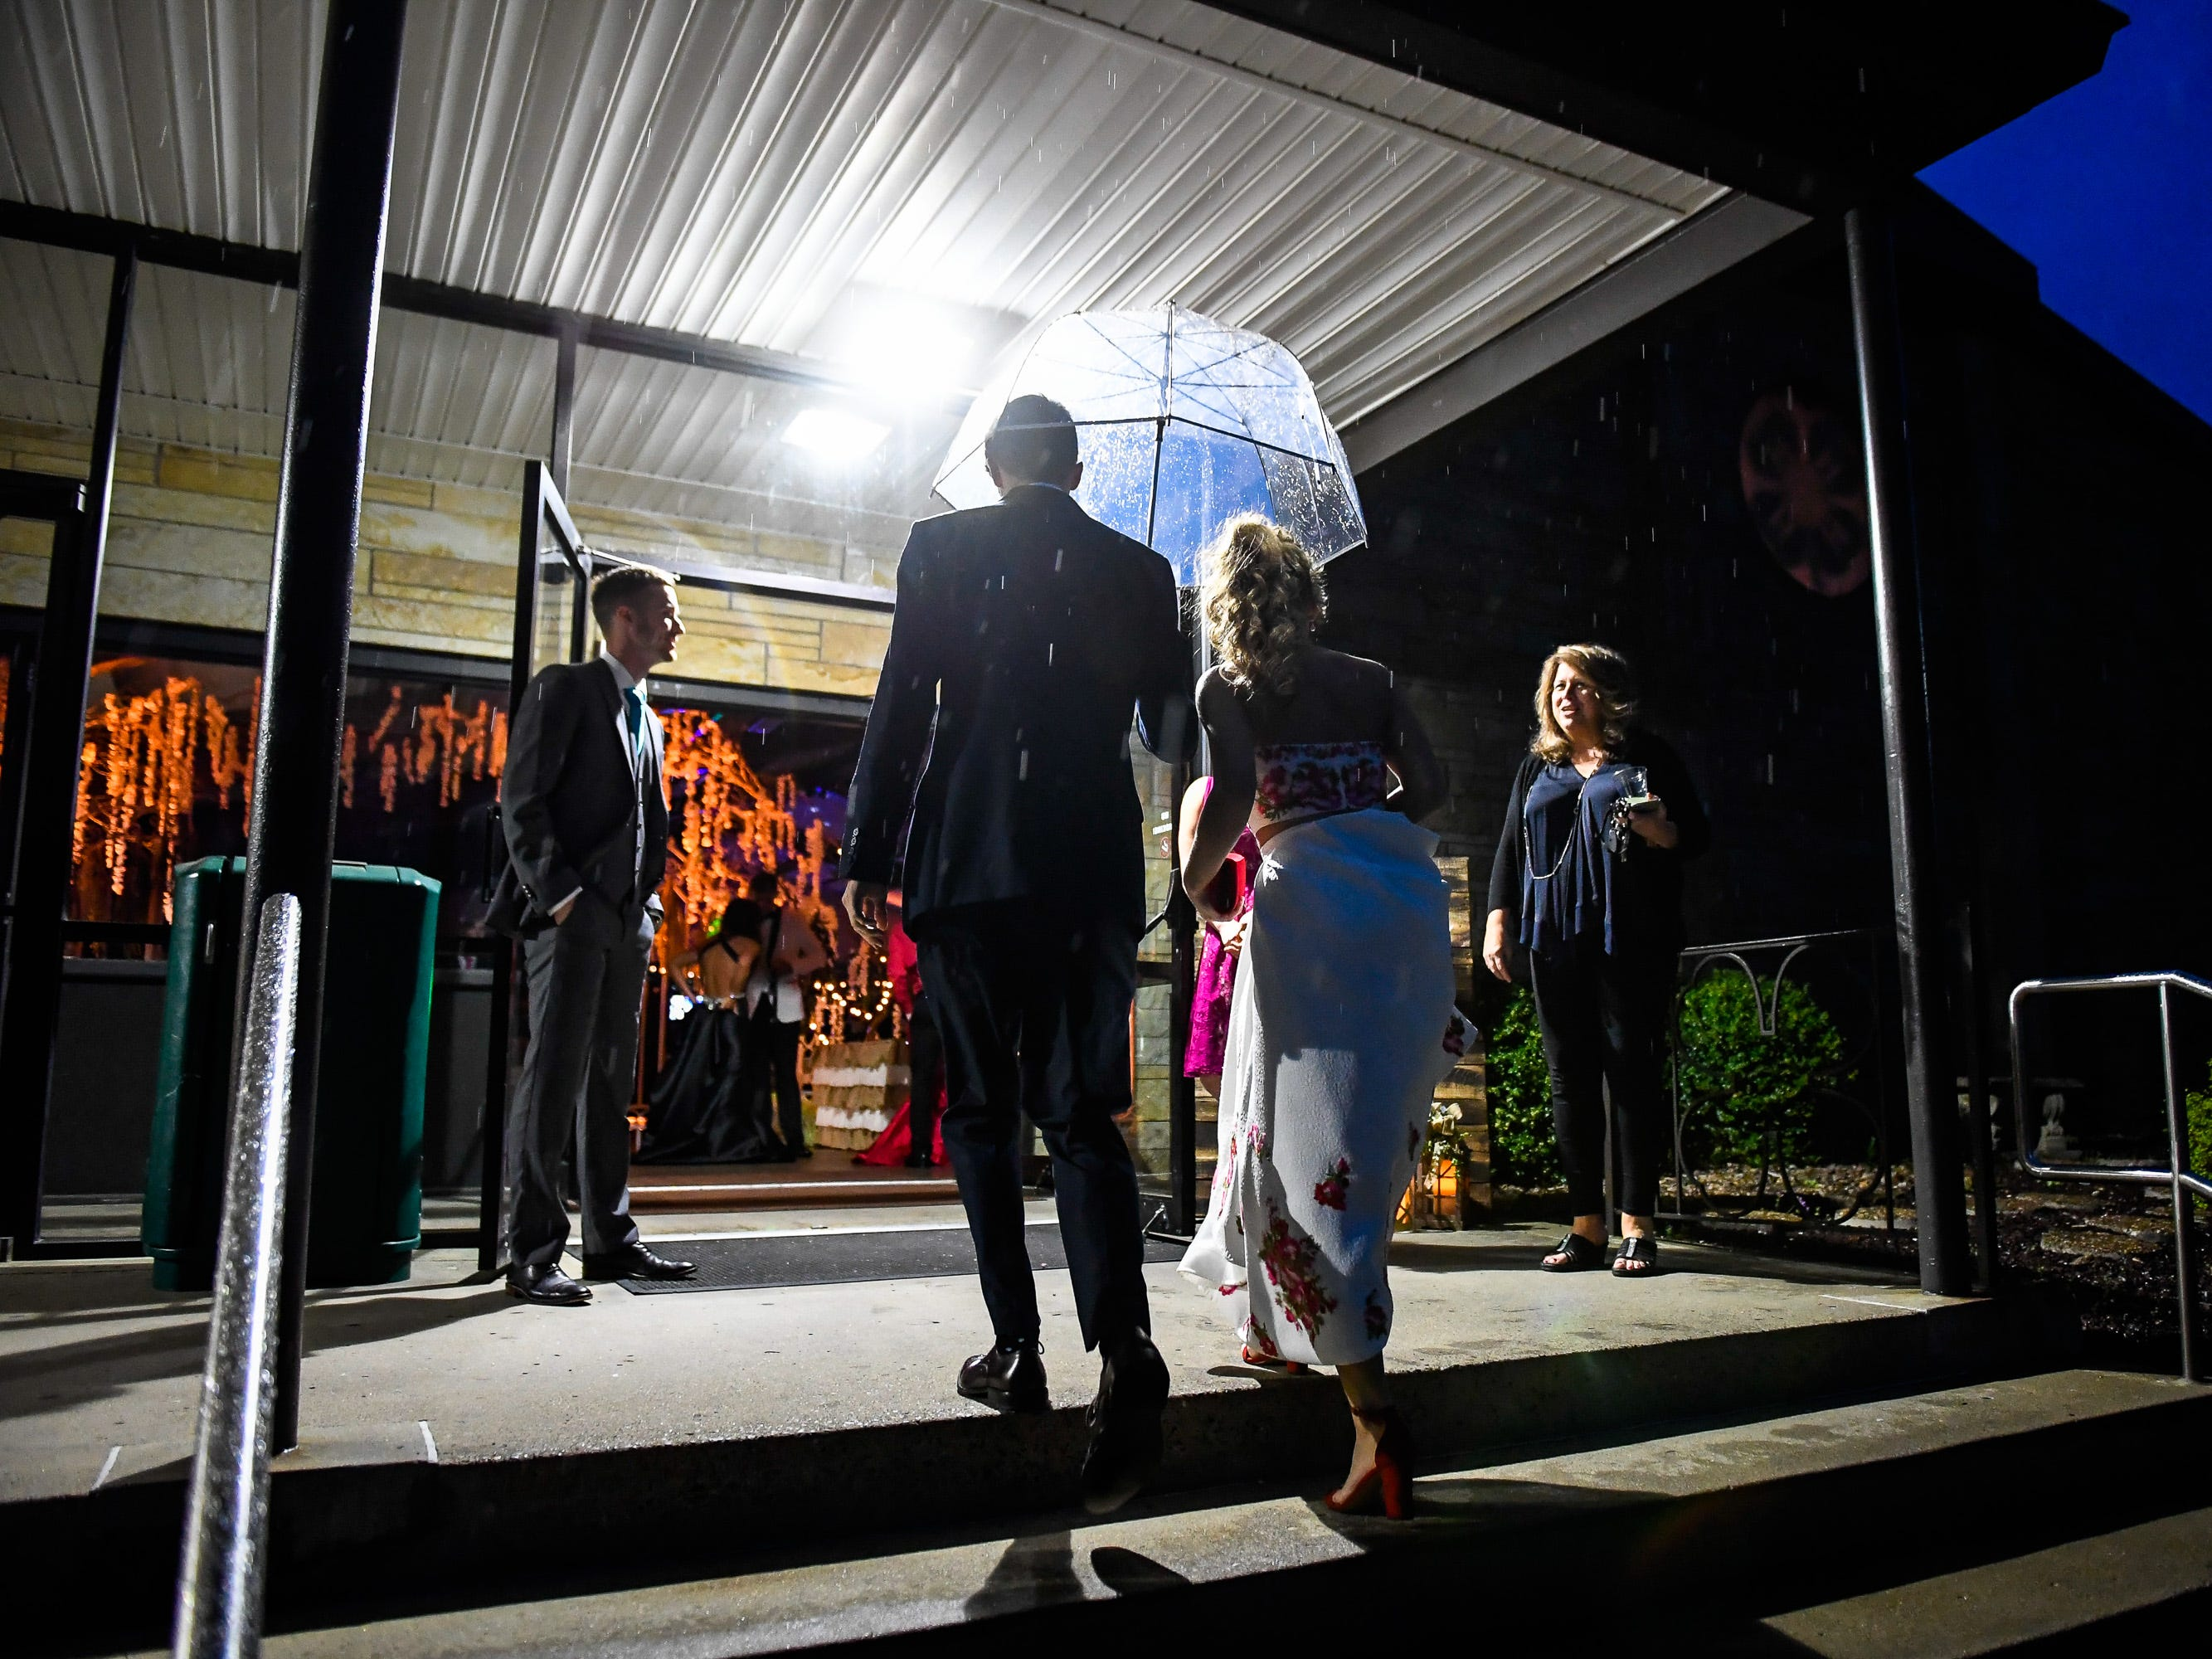 Couples arriving in the rain at the Reitz High School Prom held at the Vanderburgh 4-H Center Saturday, April 13, 2019.